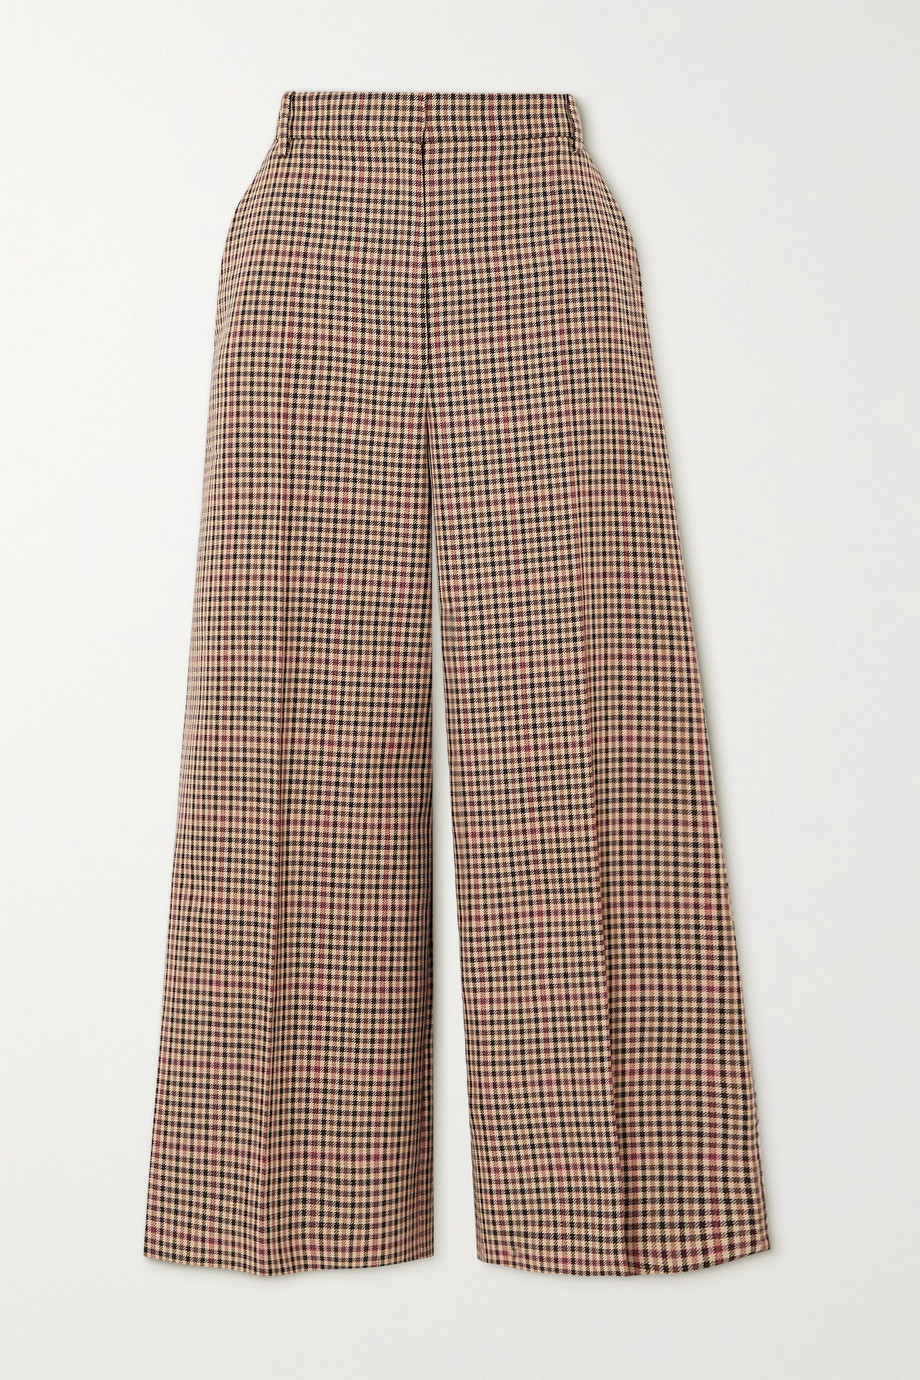 Joseph Travis checked wool-blend wide-leg pants